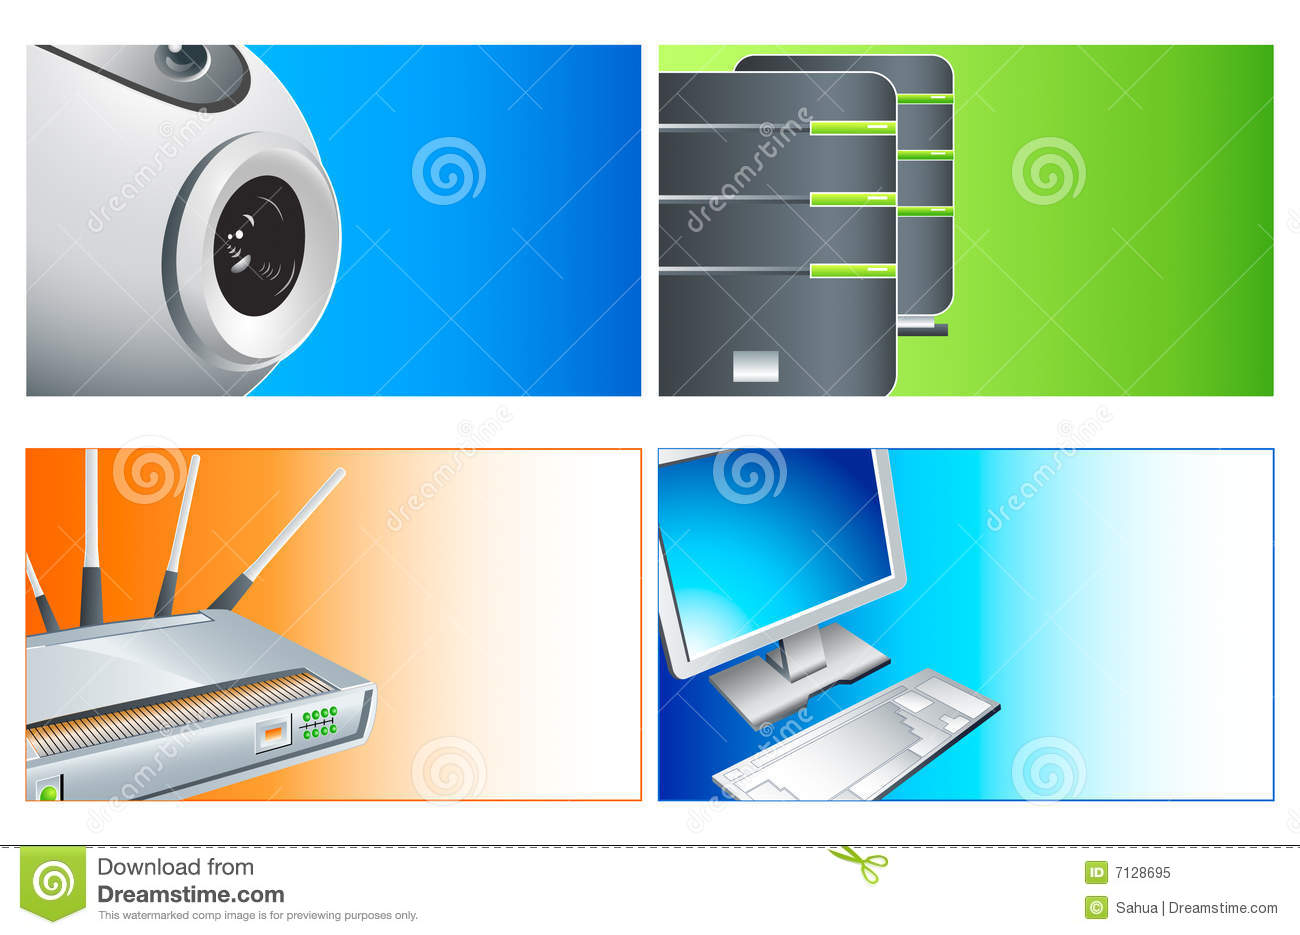 Computer business cards stock vector. Illustration of advanced - 7128695